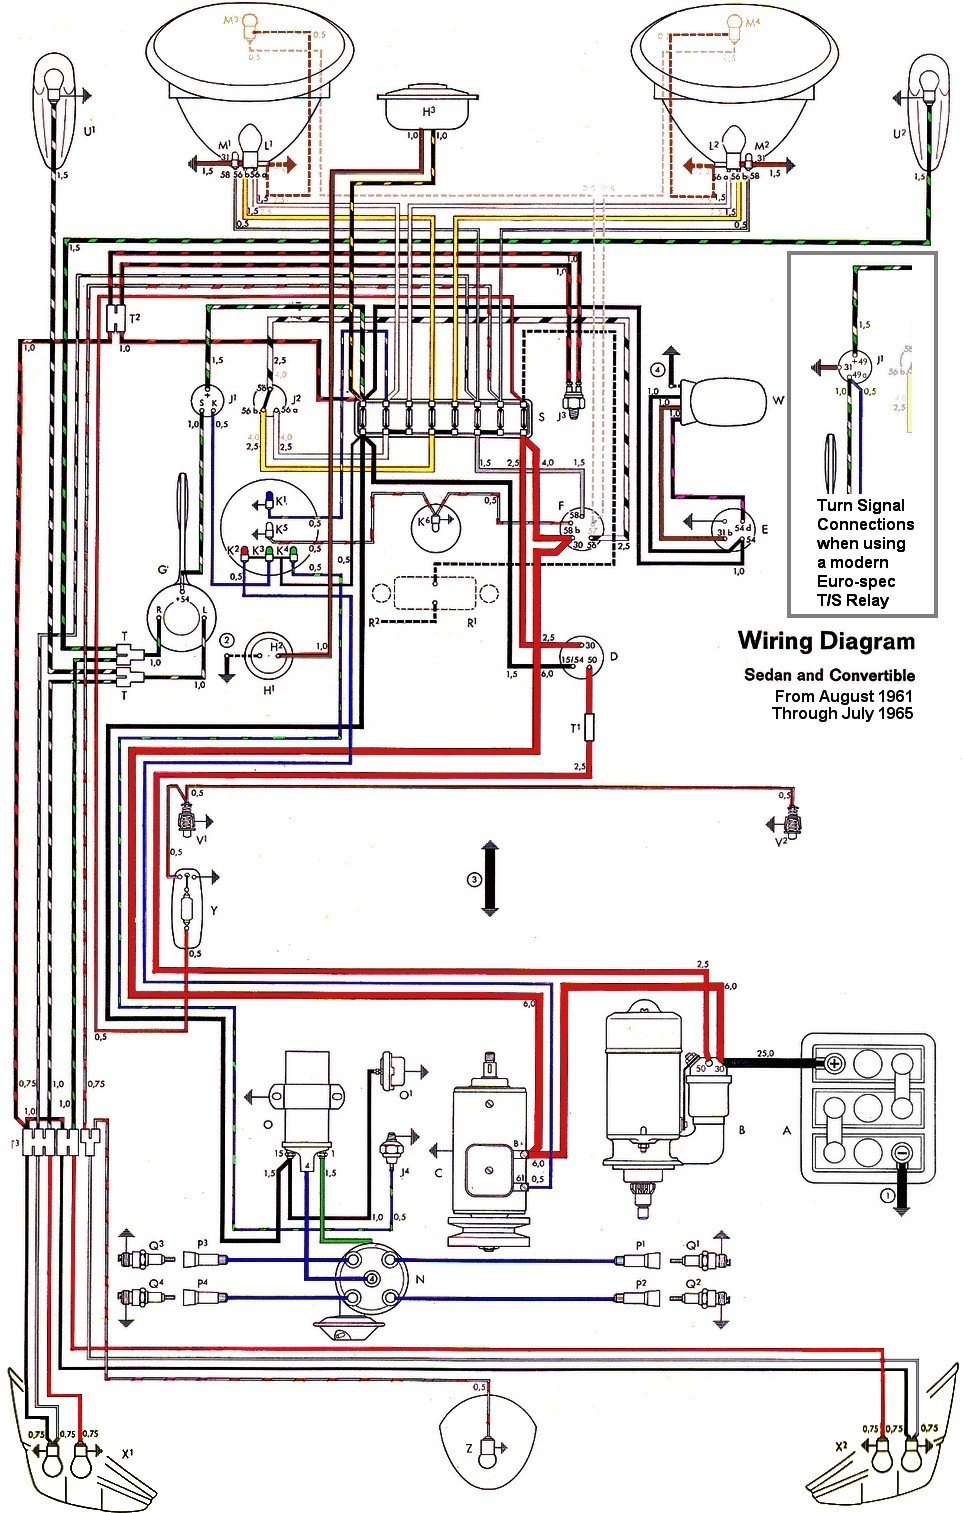 bug_62 65withinset thesamba com type 1 wiring diagrams vw wiring diagrams at couponss.co